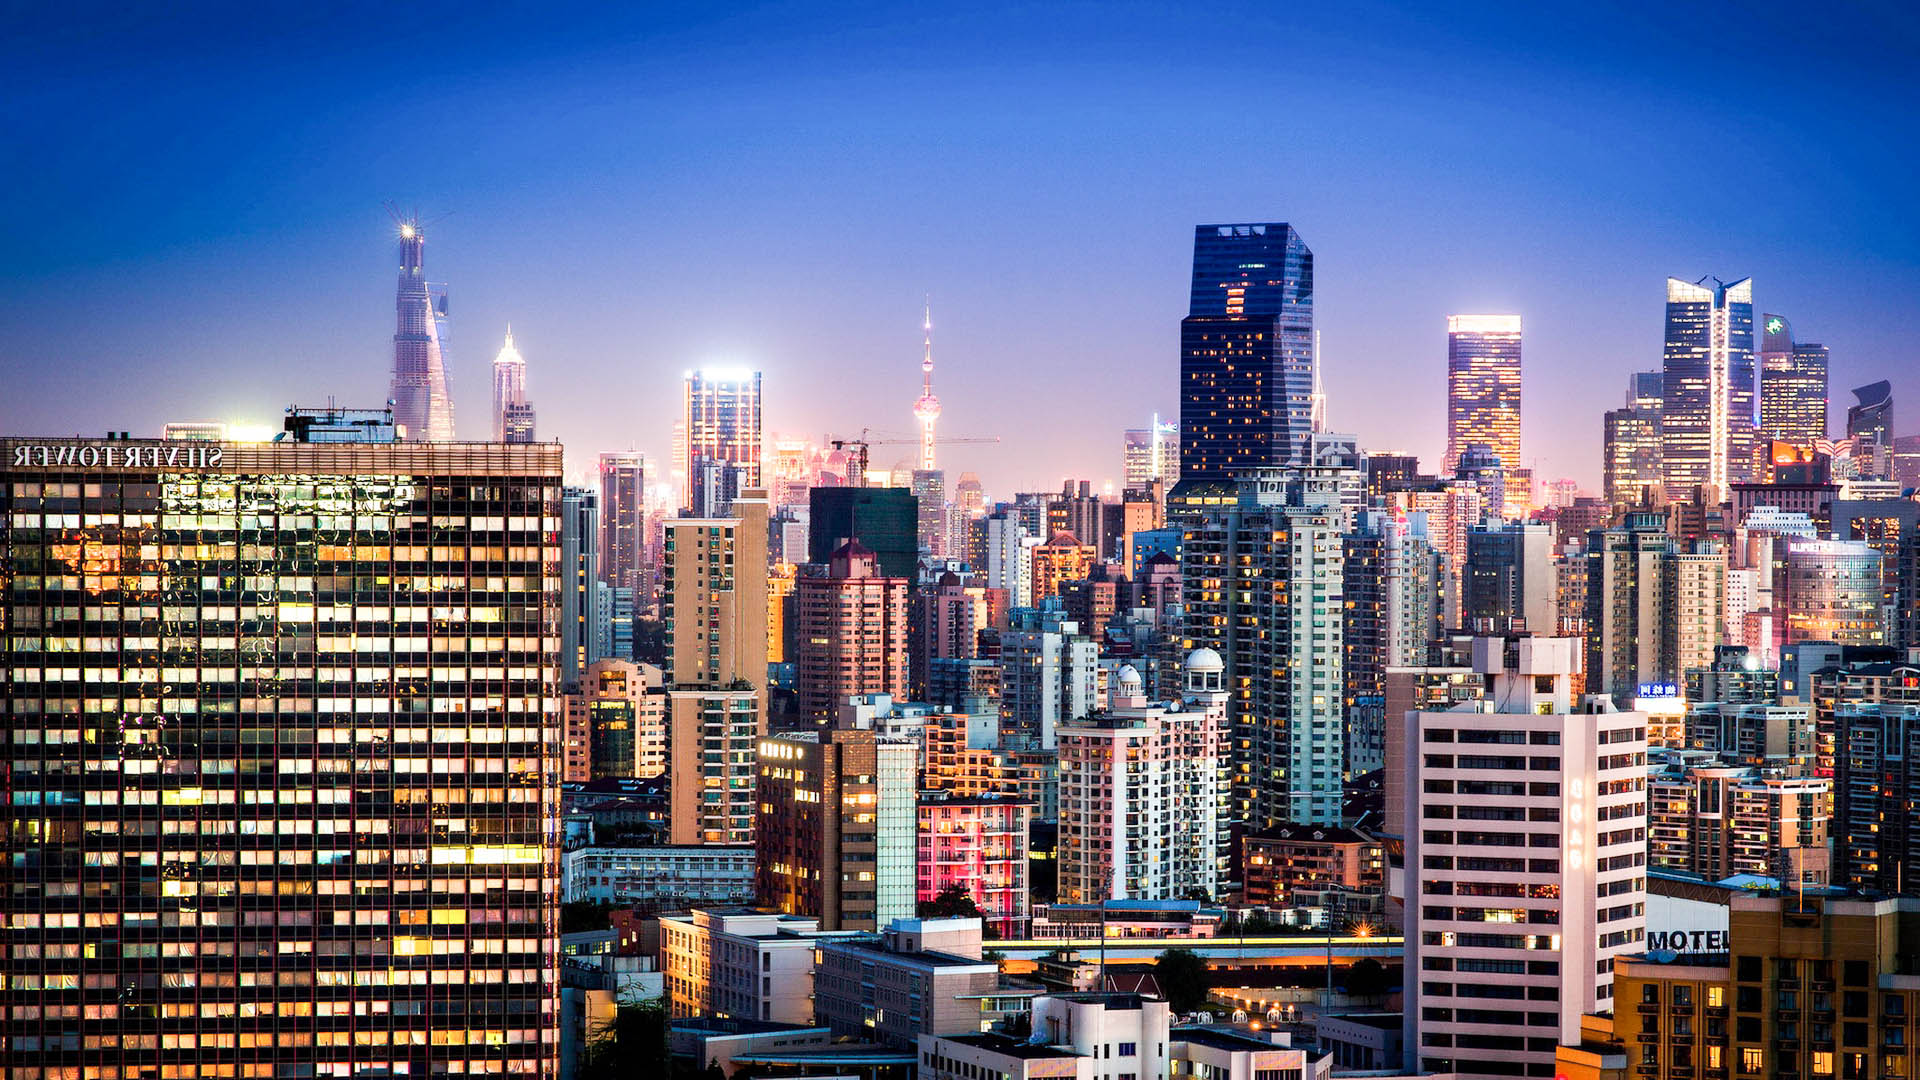 Great Wallpaper High Resolution City - Shanghai-10  You Should Have_693596.jpg